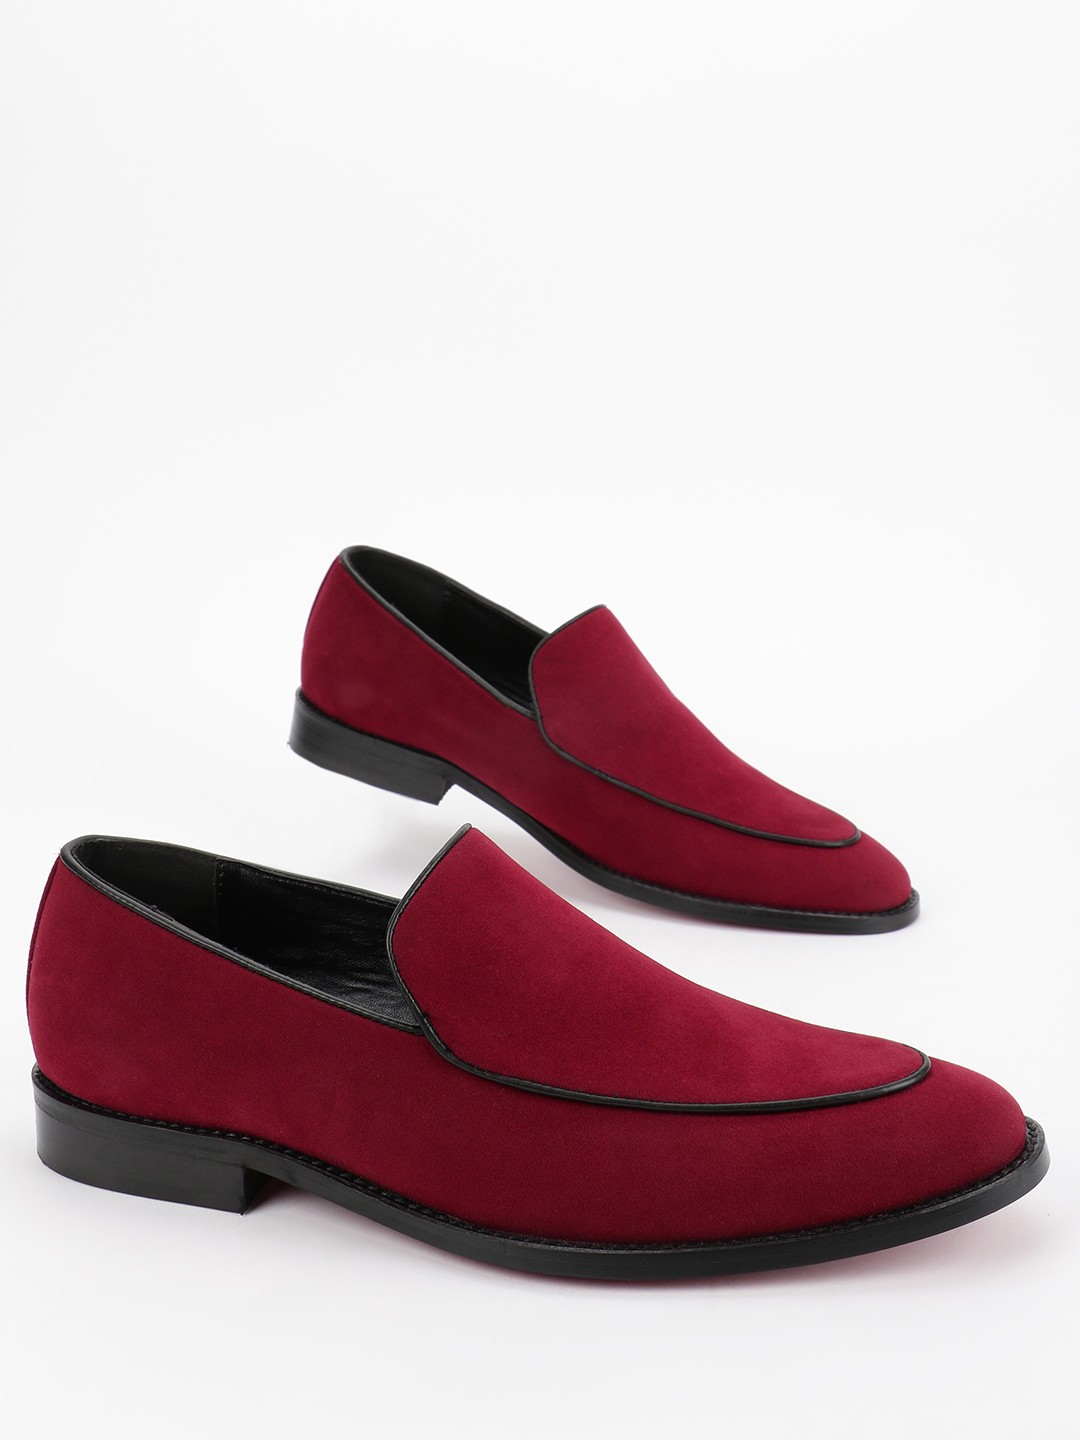 KOOVS Burgundy Suede Contrast Piping Loafers 1